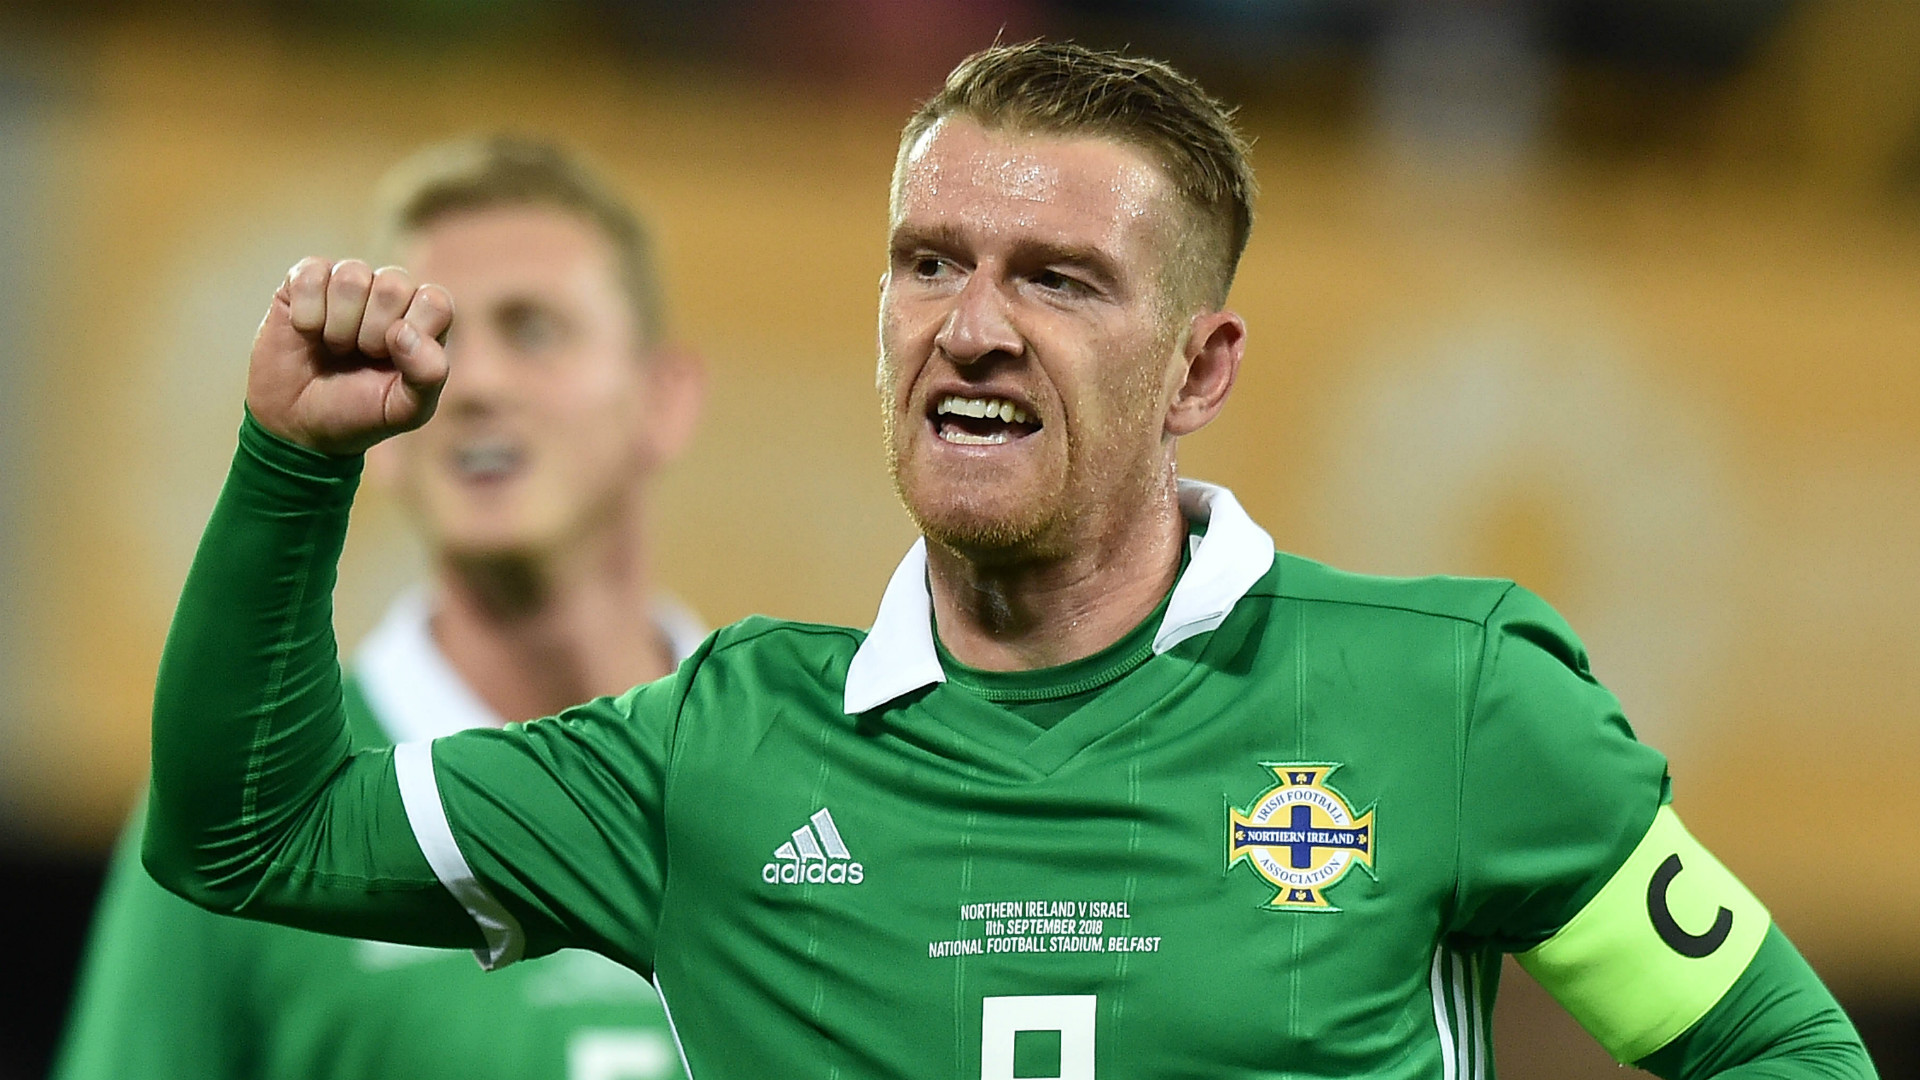 Israel v northern ireland betting preview goal games like cs go double automatic betting